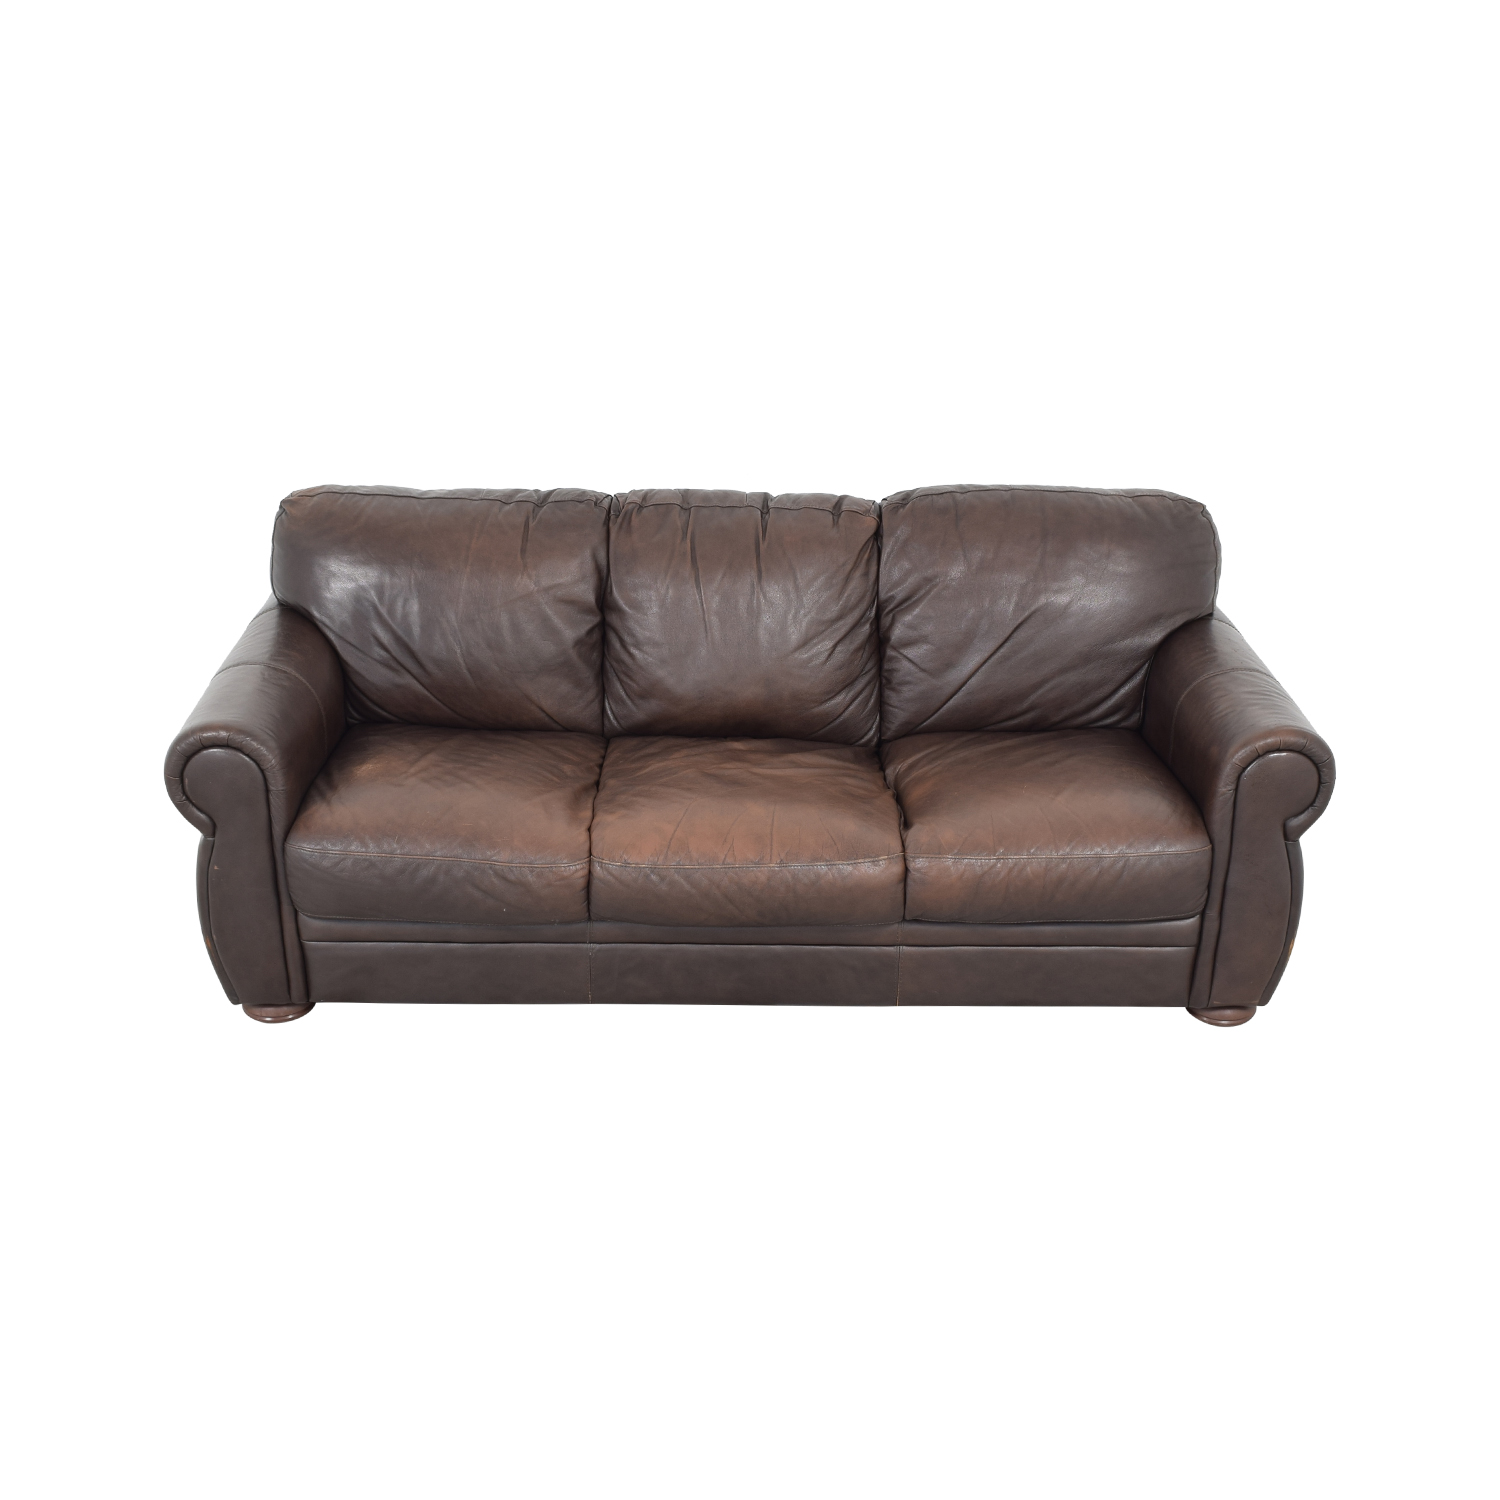 buy Chateau D'ax Marsala Leather Sofa Chateau d'Ax